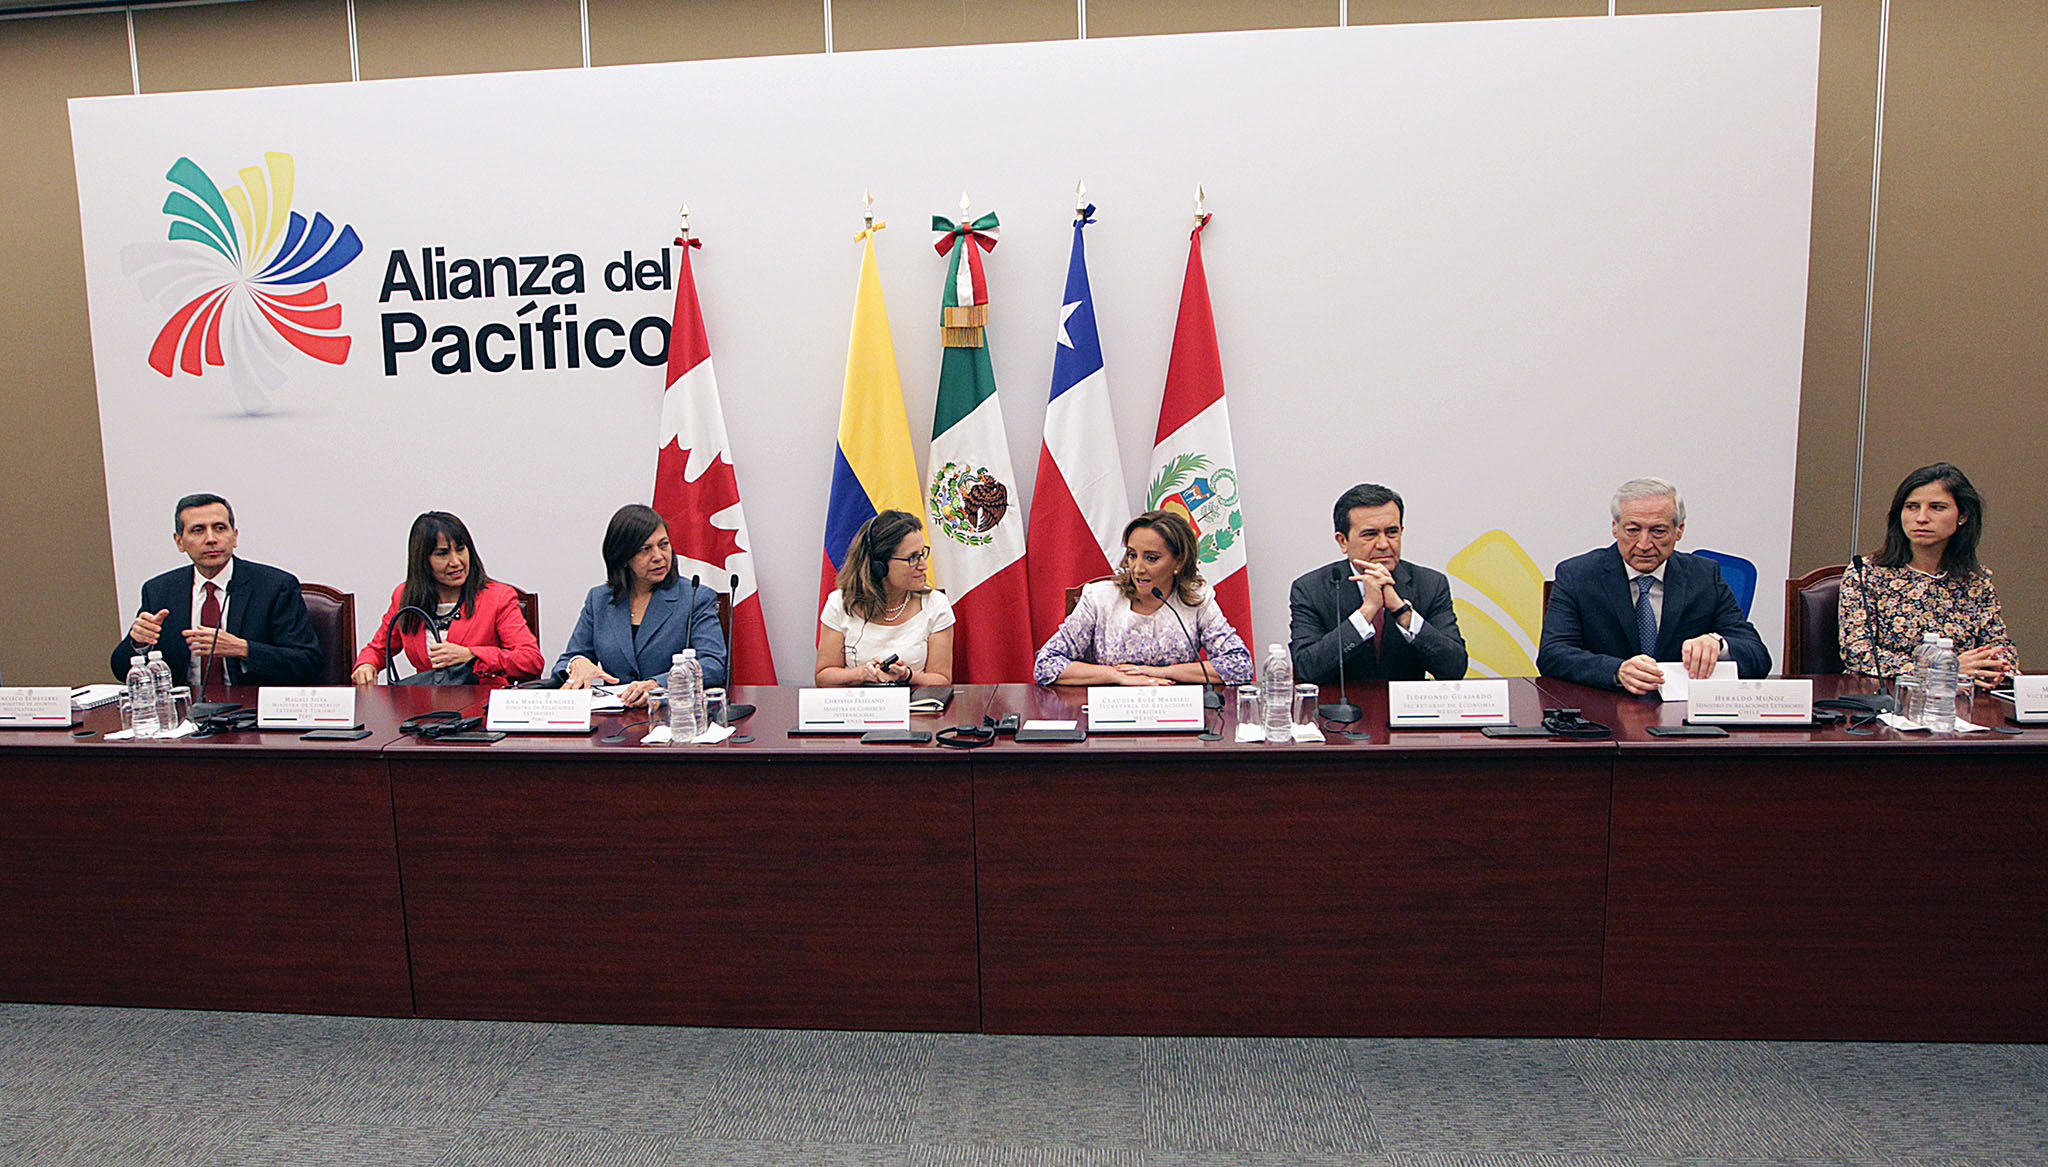 Mexico hosts the 15th ministerial meeting of the Pacific Alliance